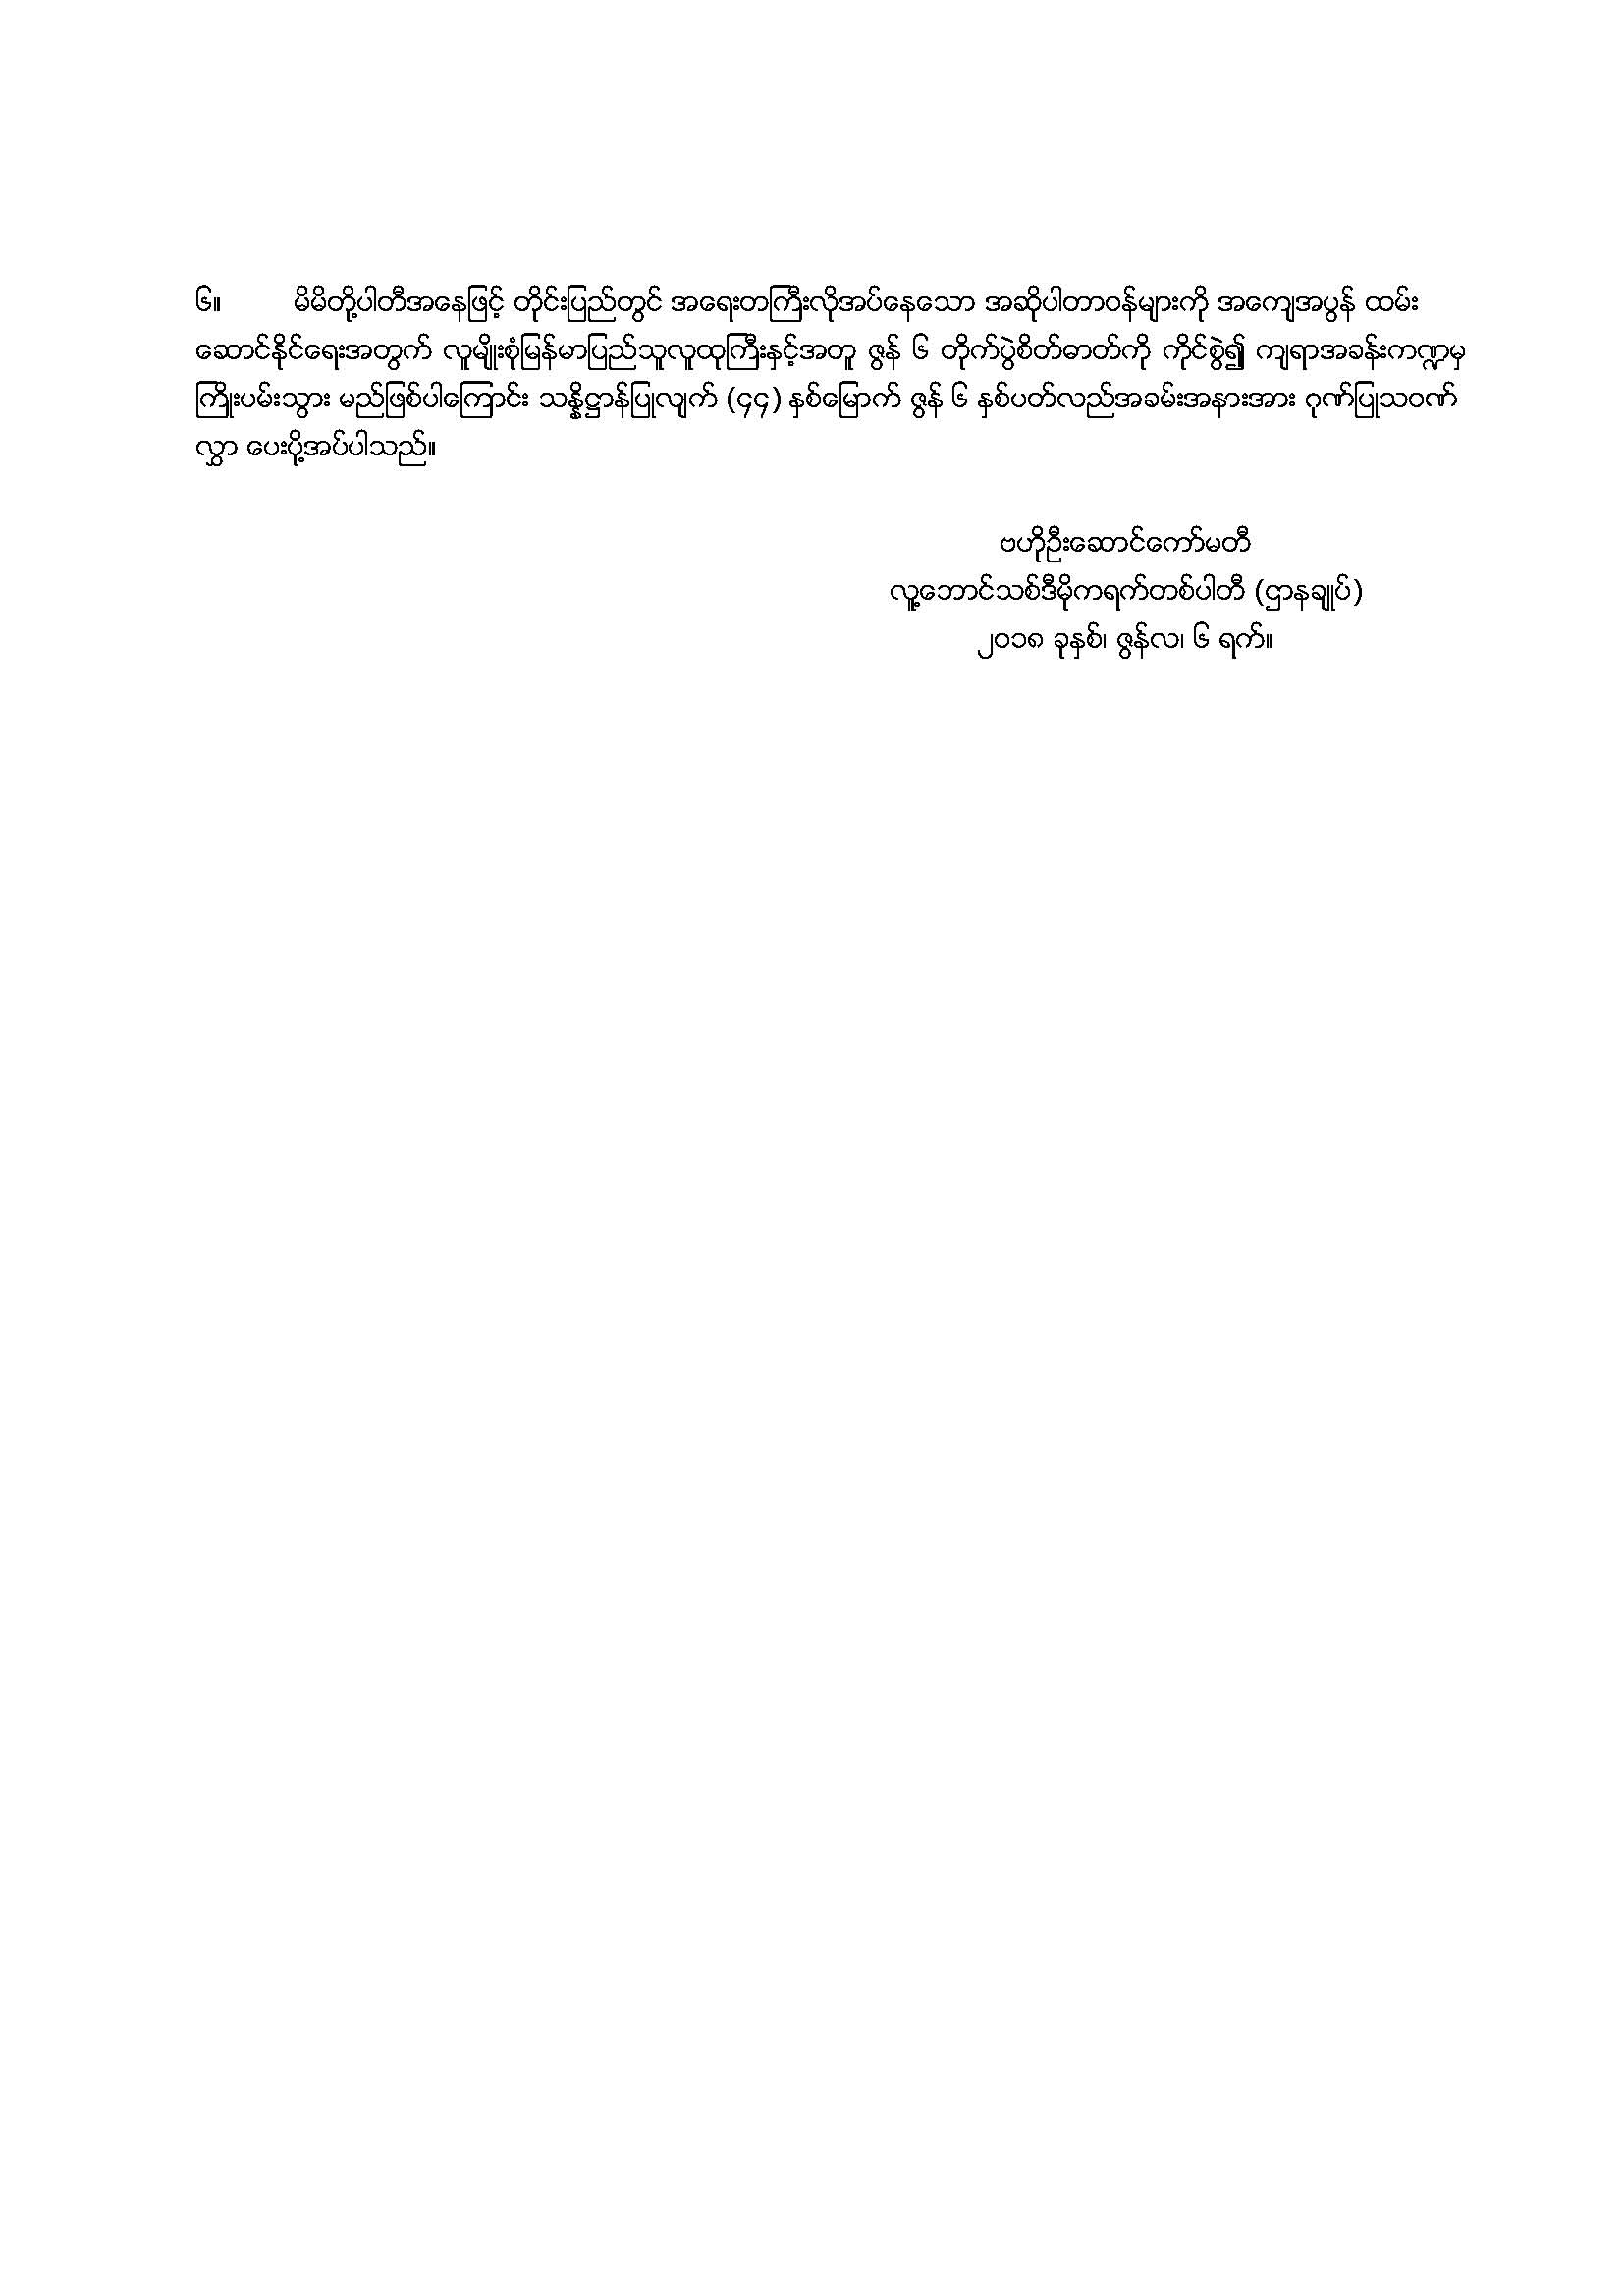 15.-Draft-Felicitation-Letter-to-44th-June-6-Labour-Strike-6-6-2018_Page_2